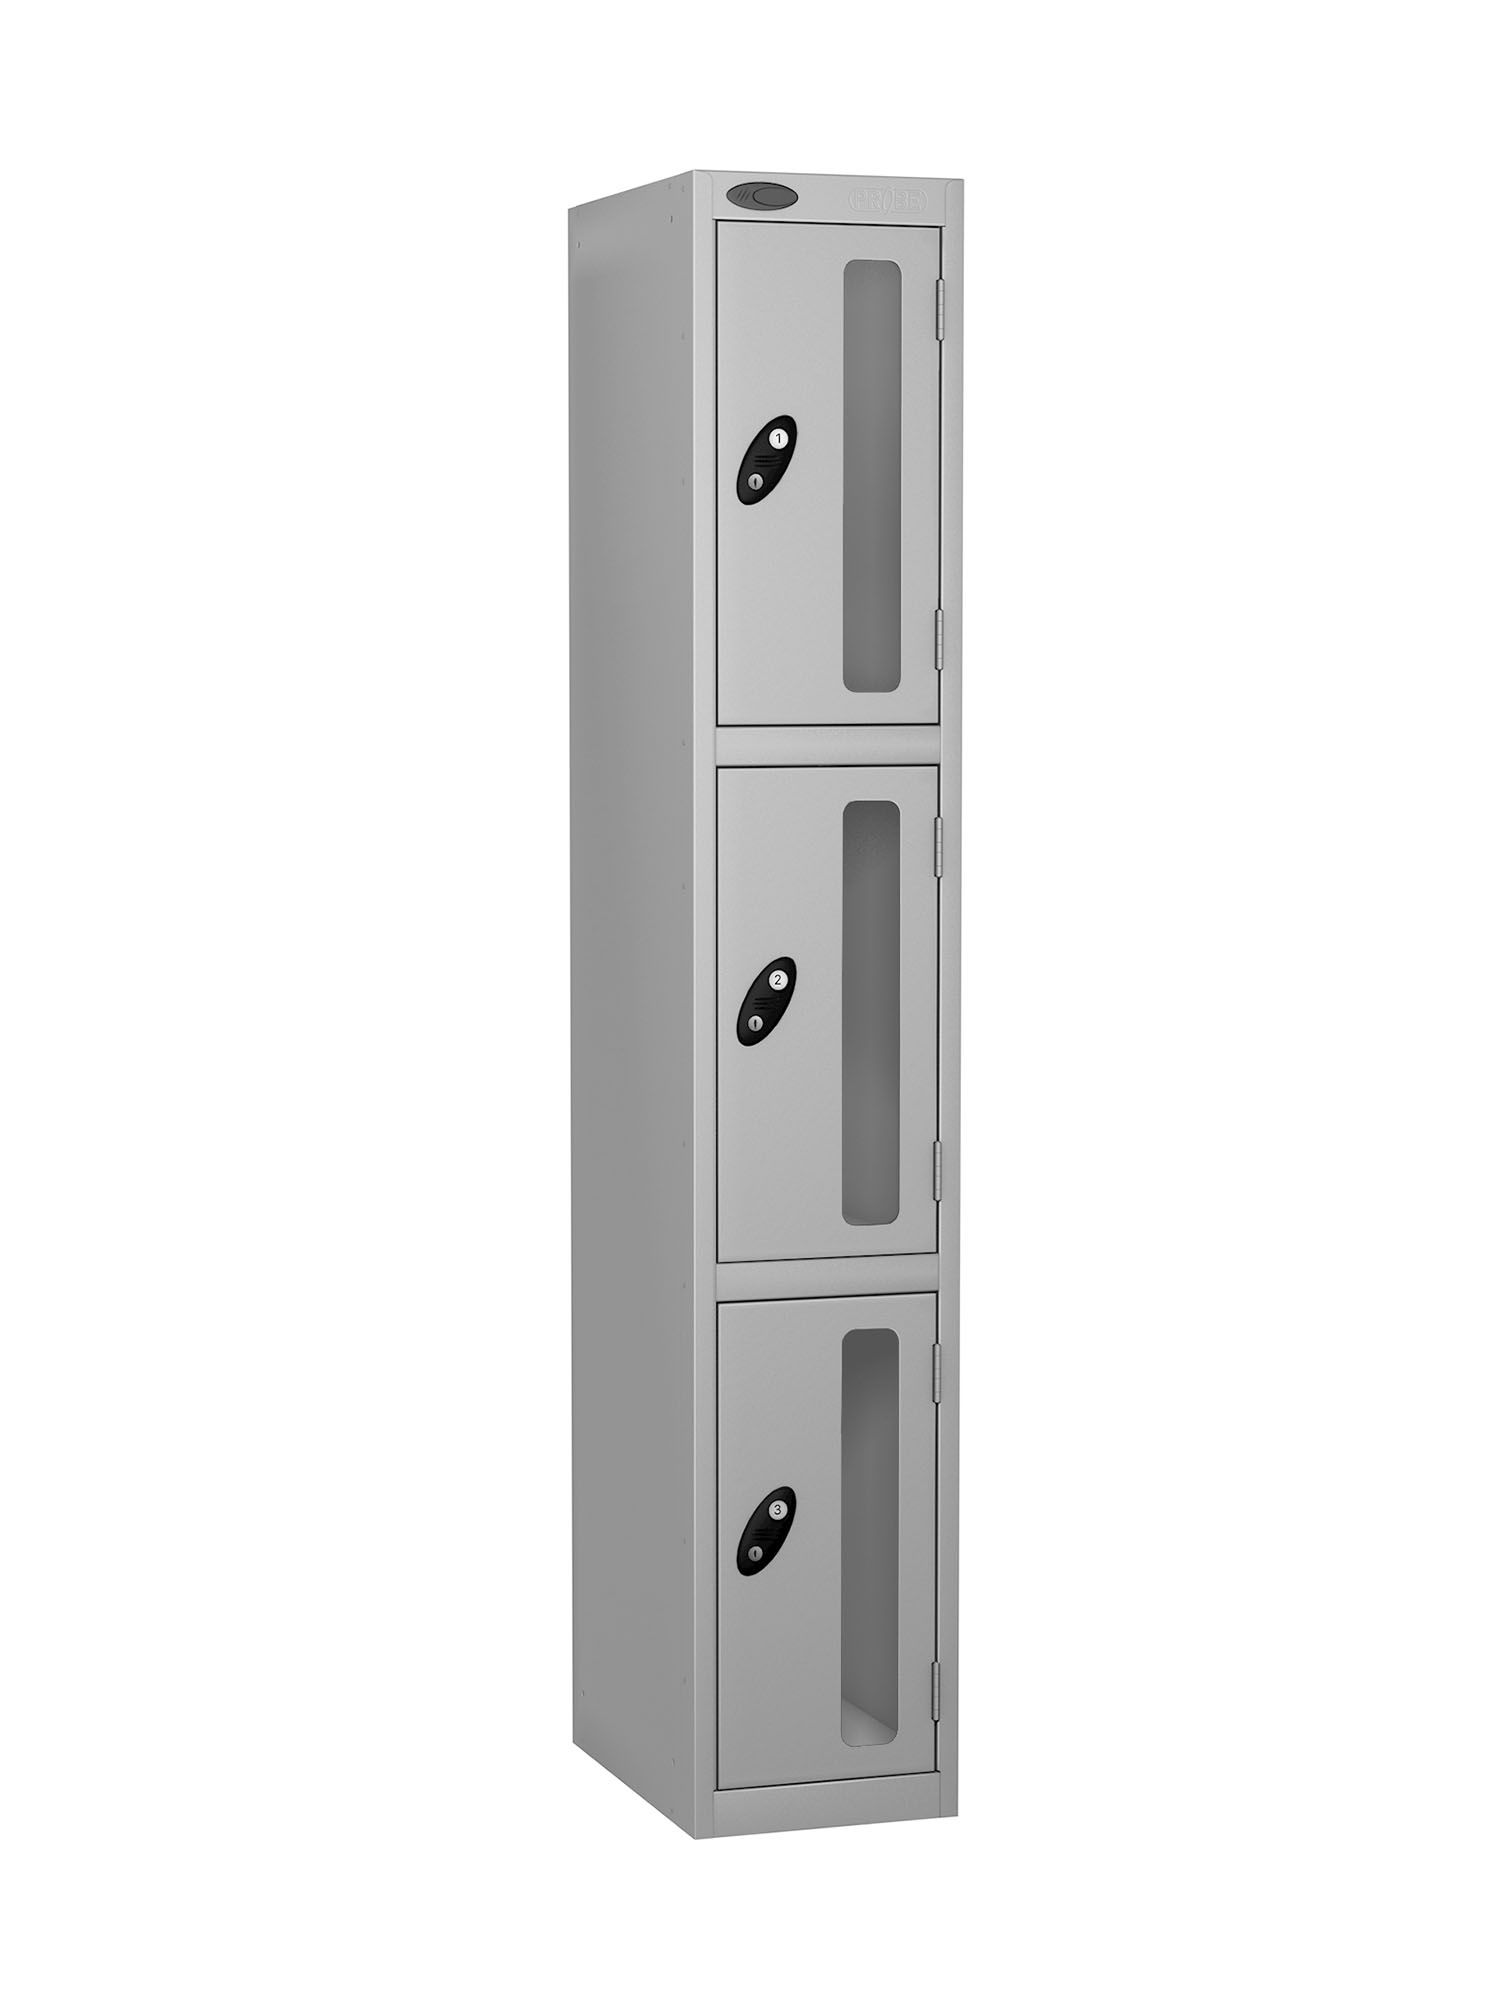 Probe 3 doors vision panel anti-stock theft locker silver